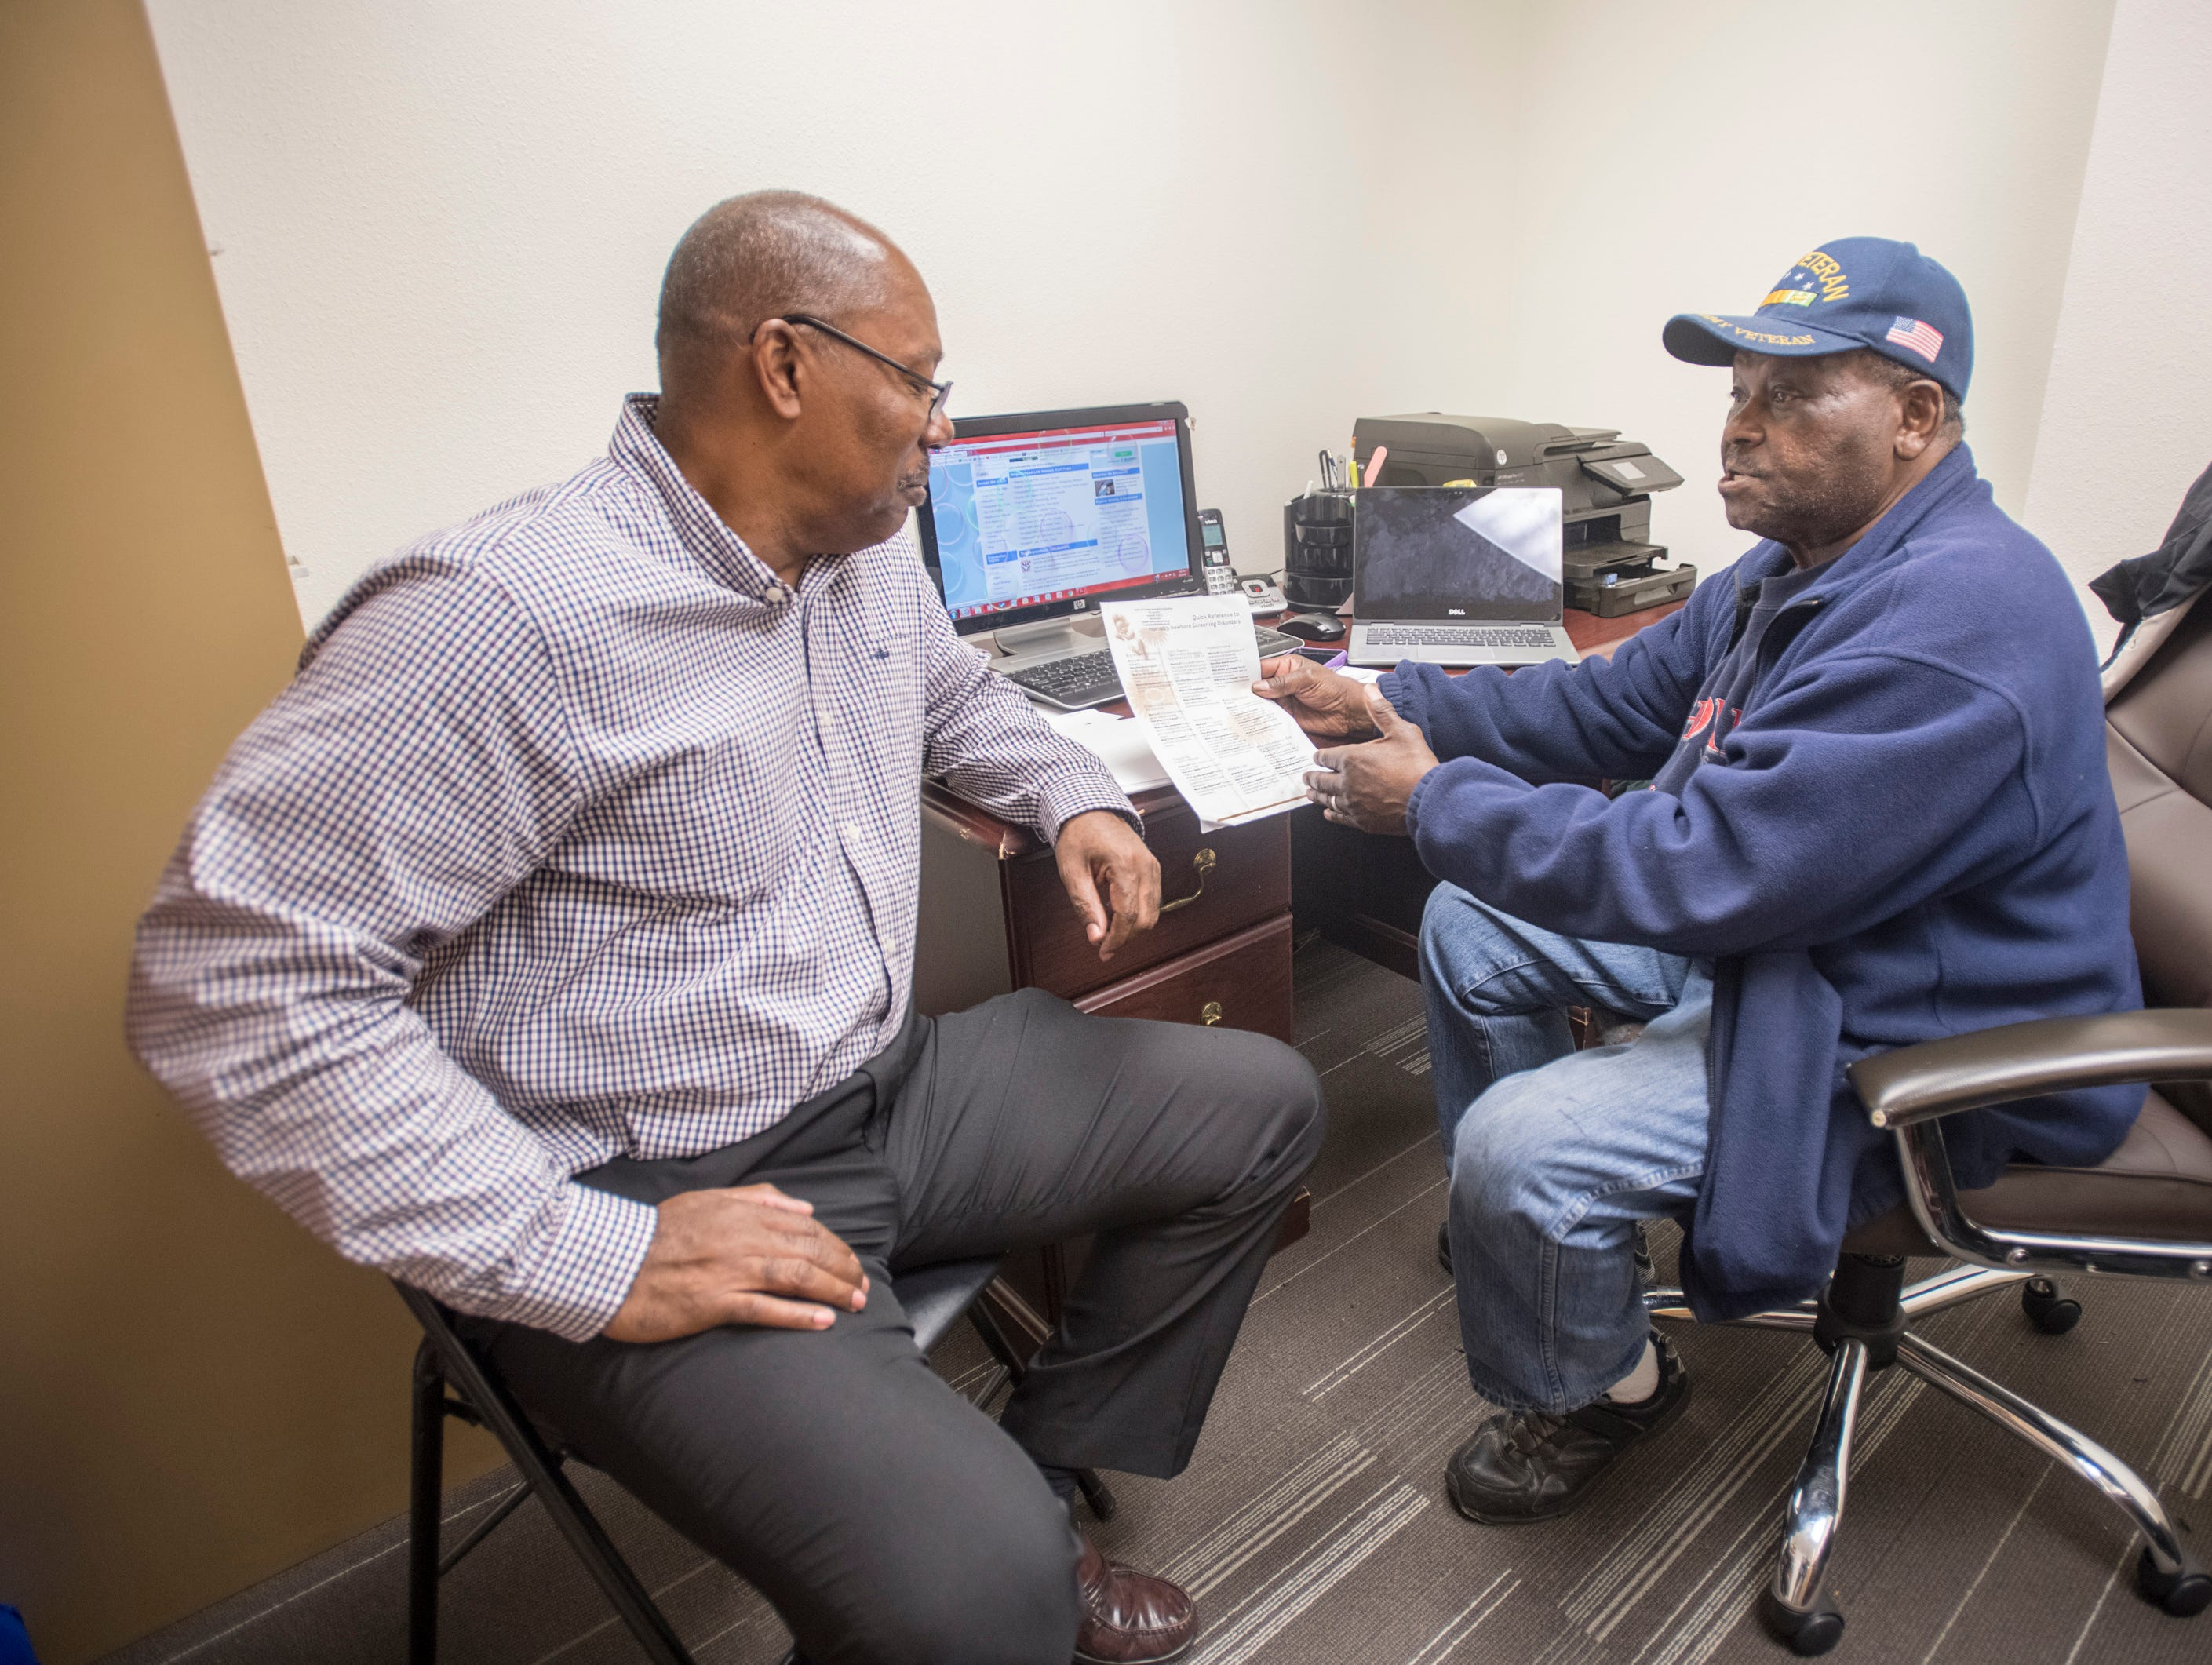 Gary Reynolds, left, and Walter Wallace, Sr. work in the Sickle Cell Disease Association office in downtown Pensacola on Monday, March 4, 2019.